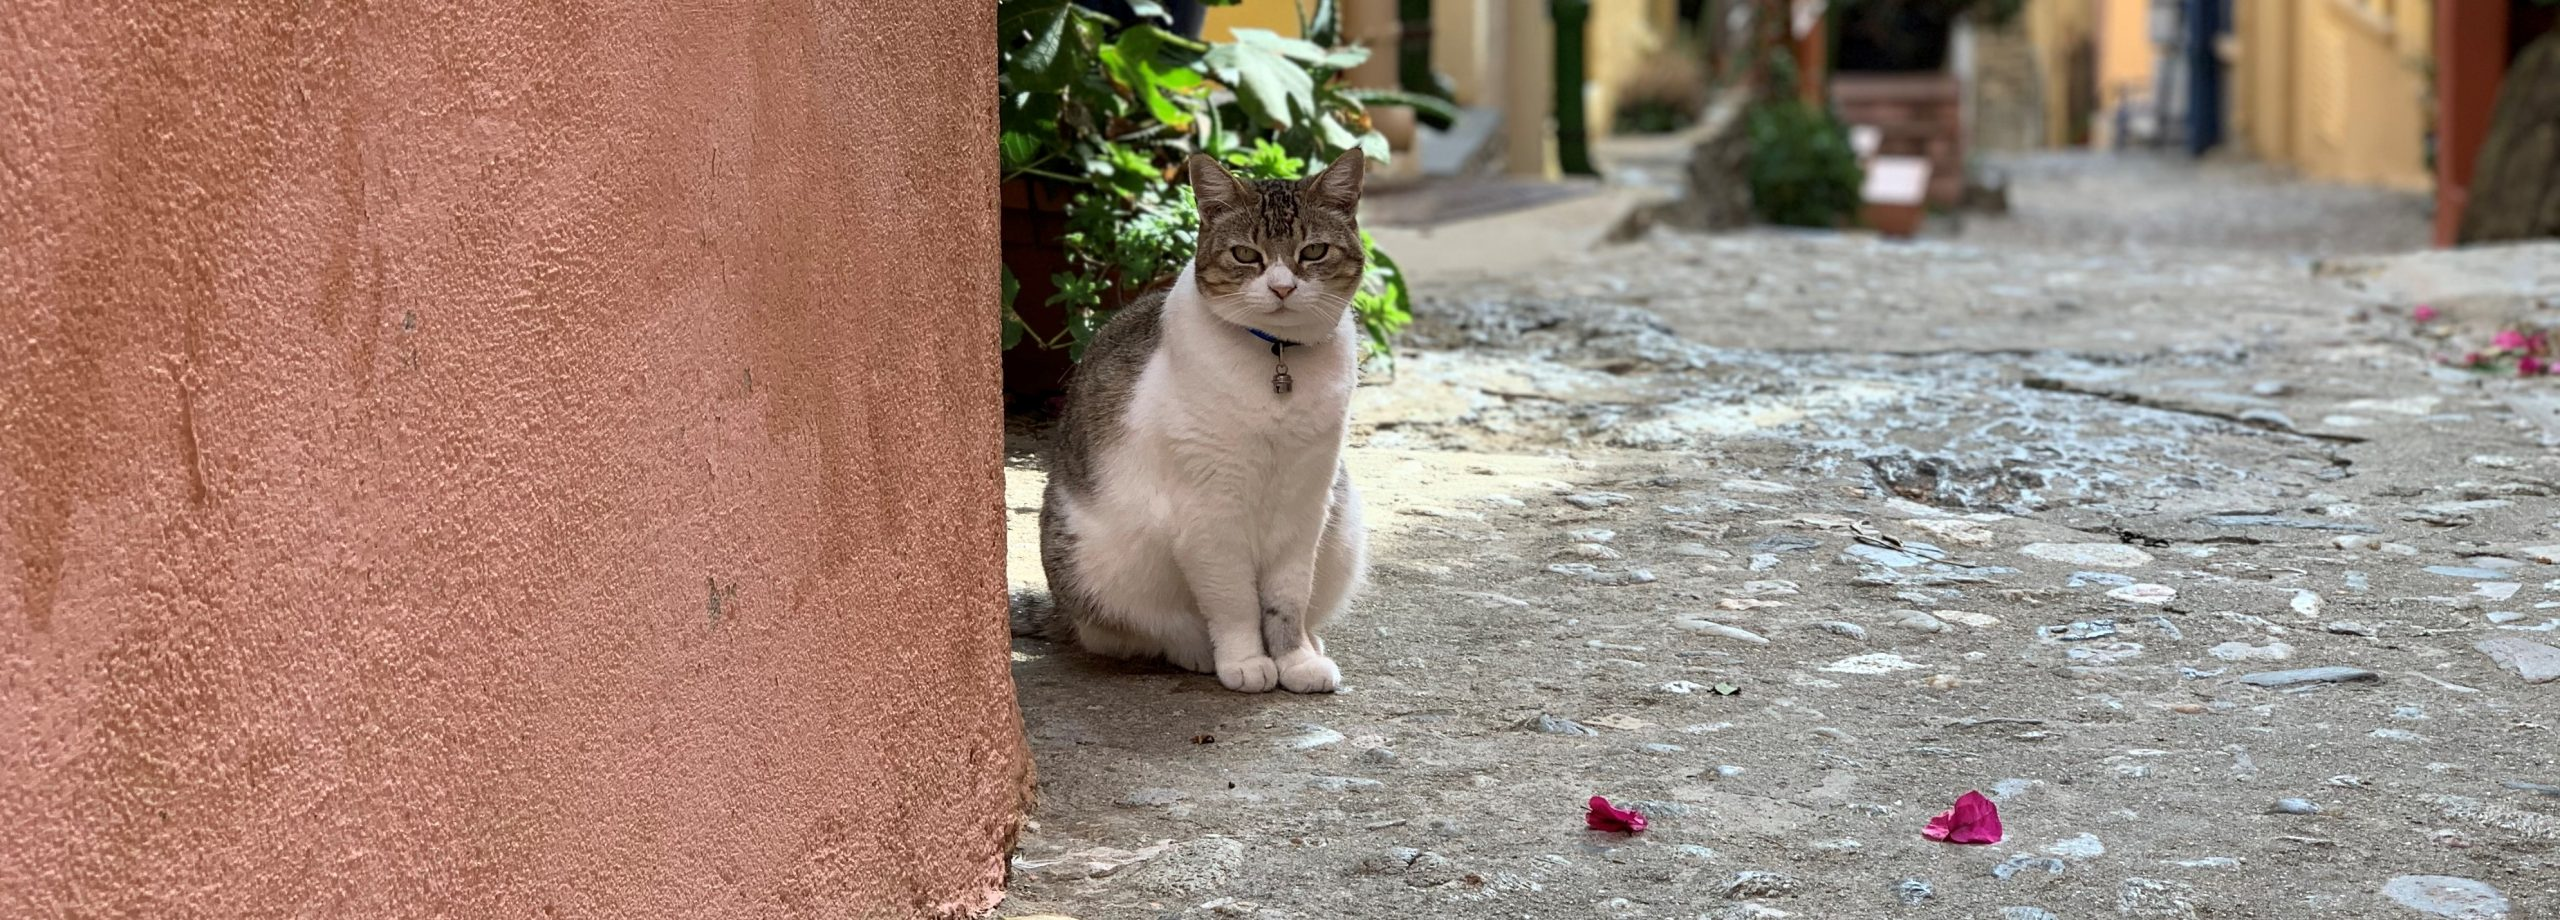 chat qui prend la pose à Collioure